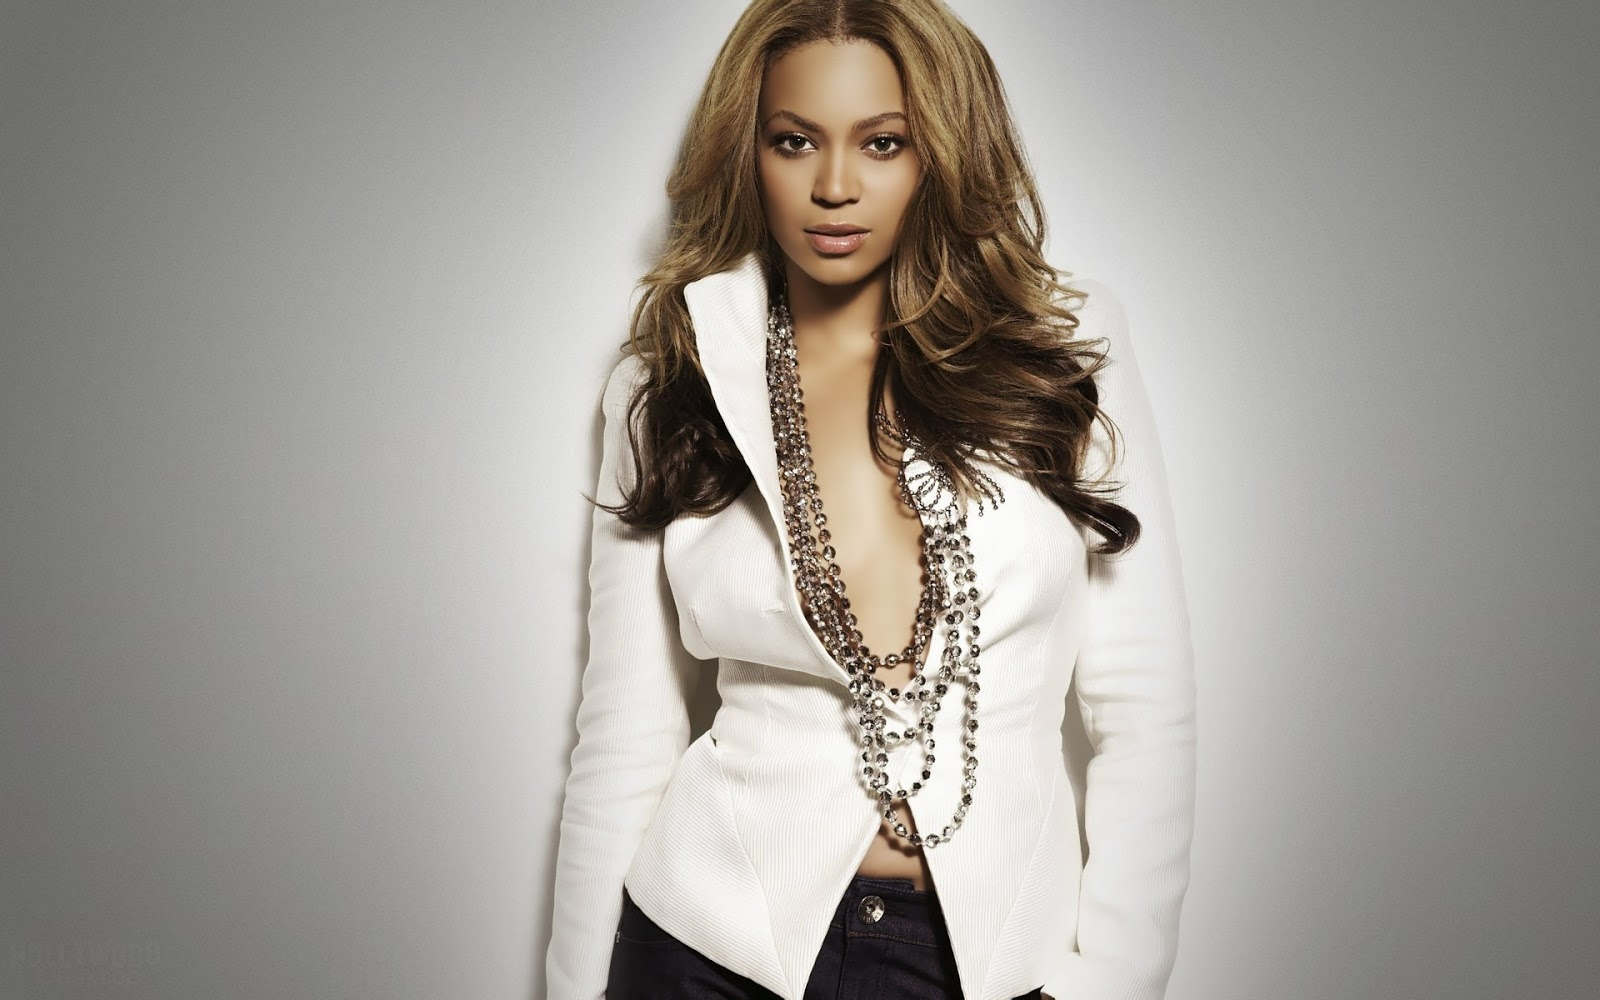 Beyonce Knowles Wallpapers Galerry Wallpaper 1600x1000